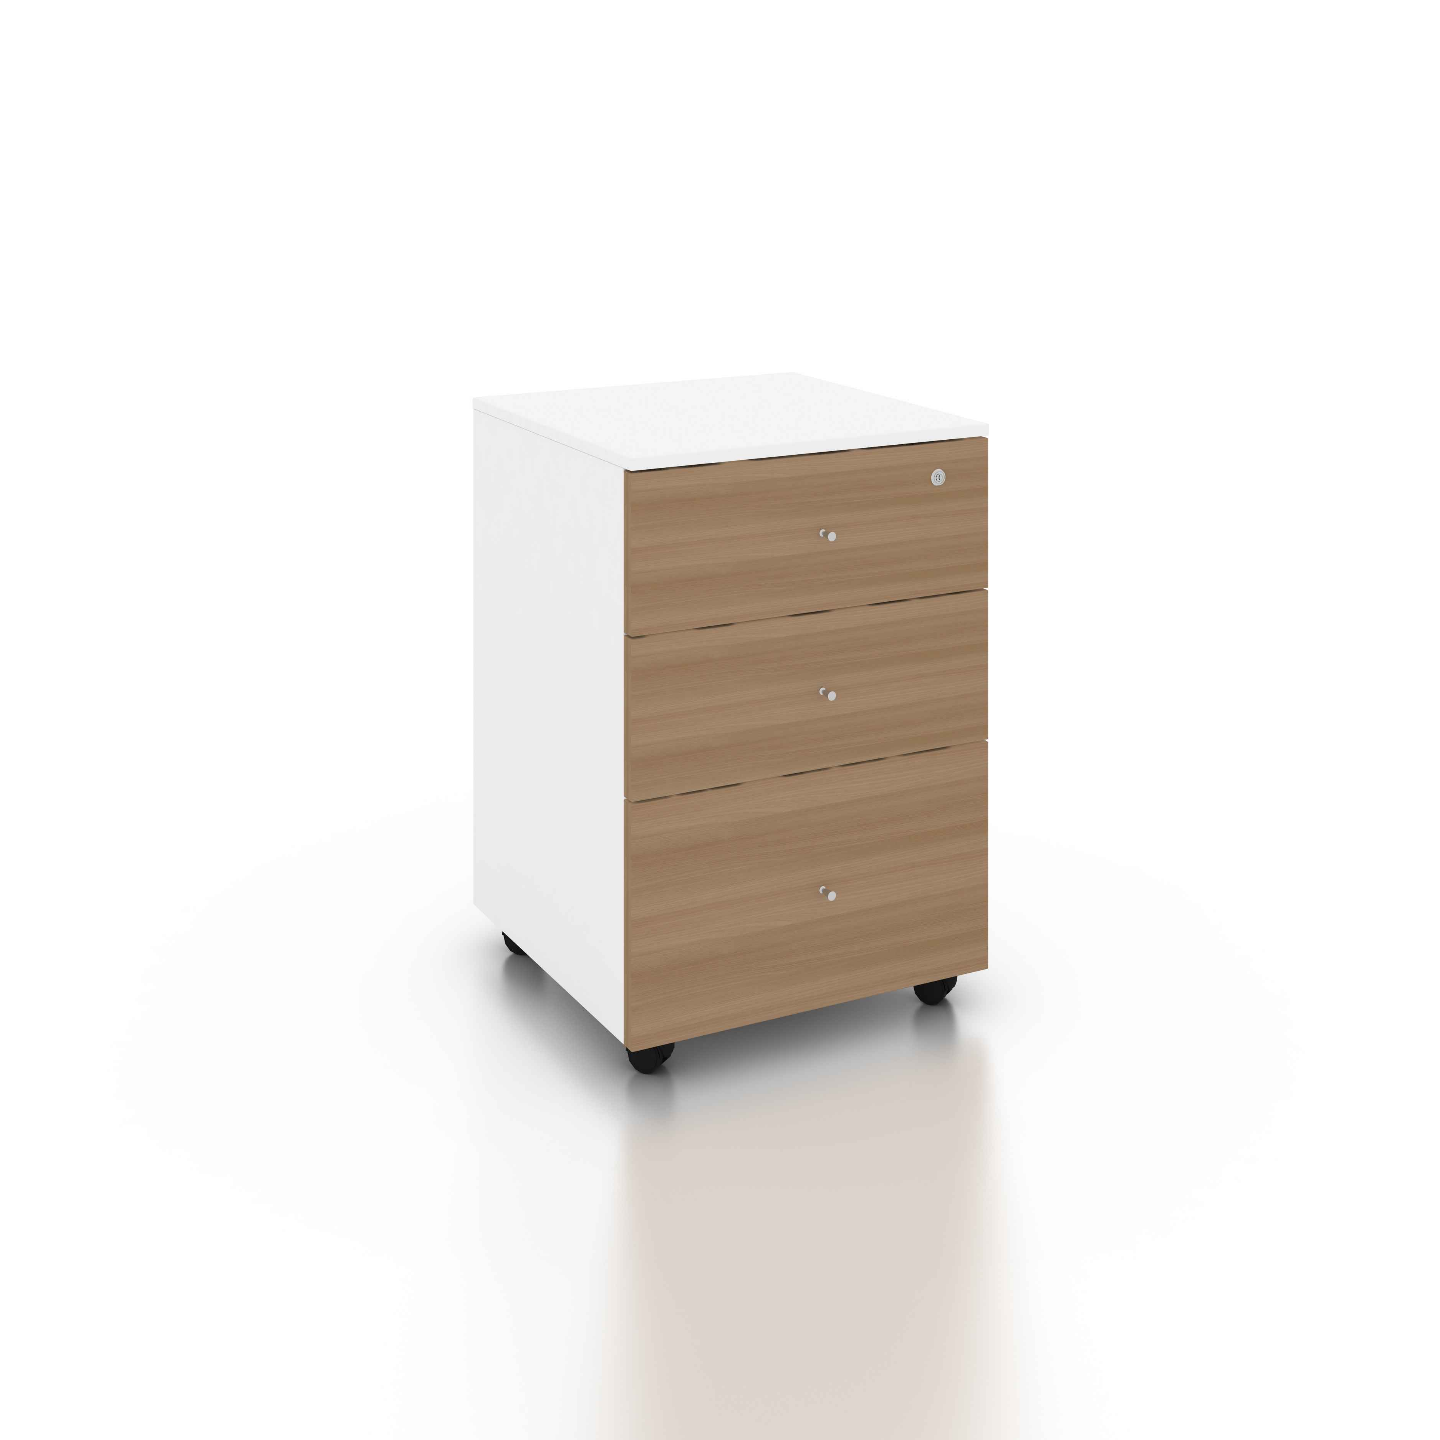 B-One Mobile 3 Drawers (Teak / White)